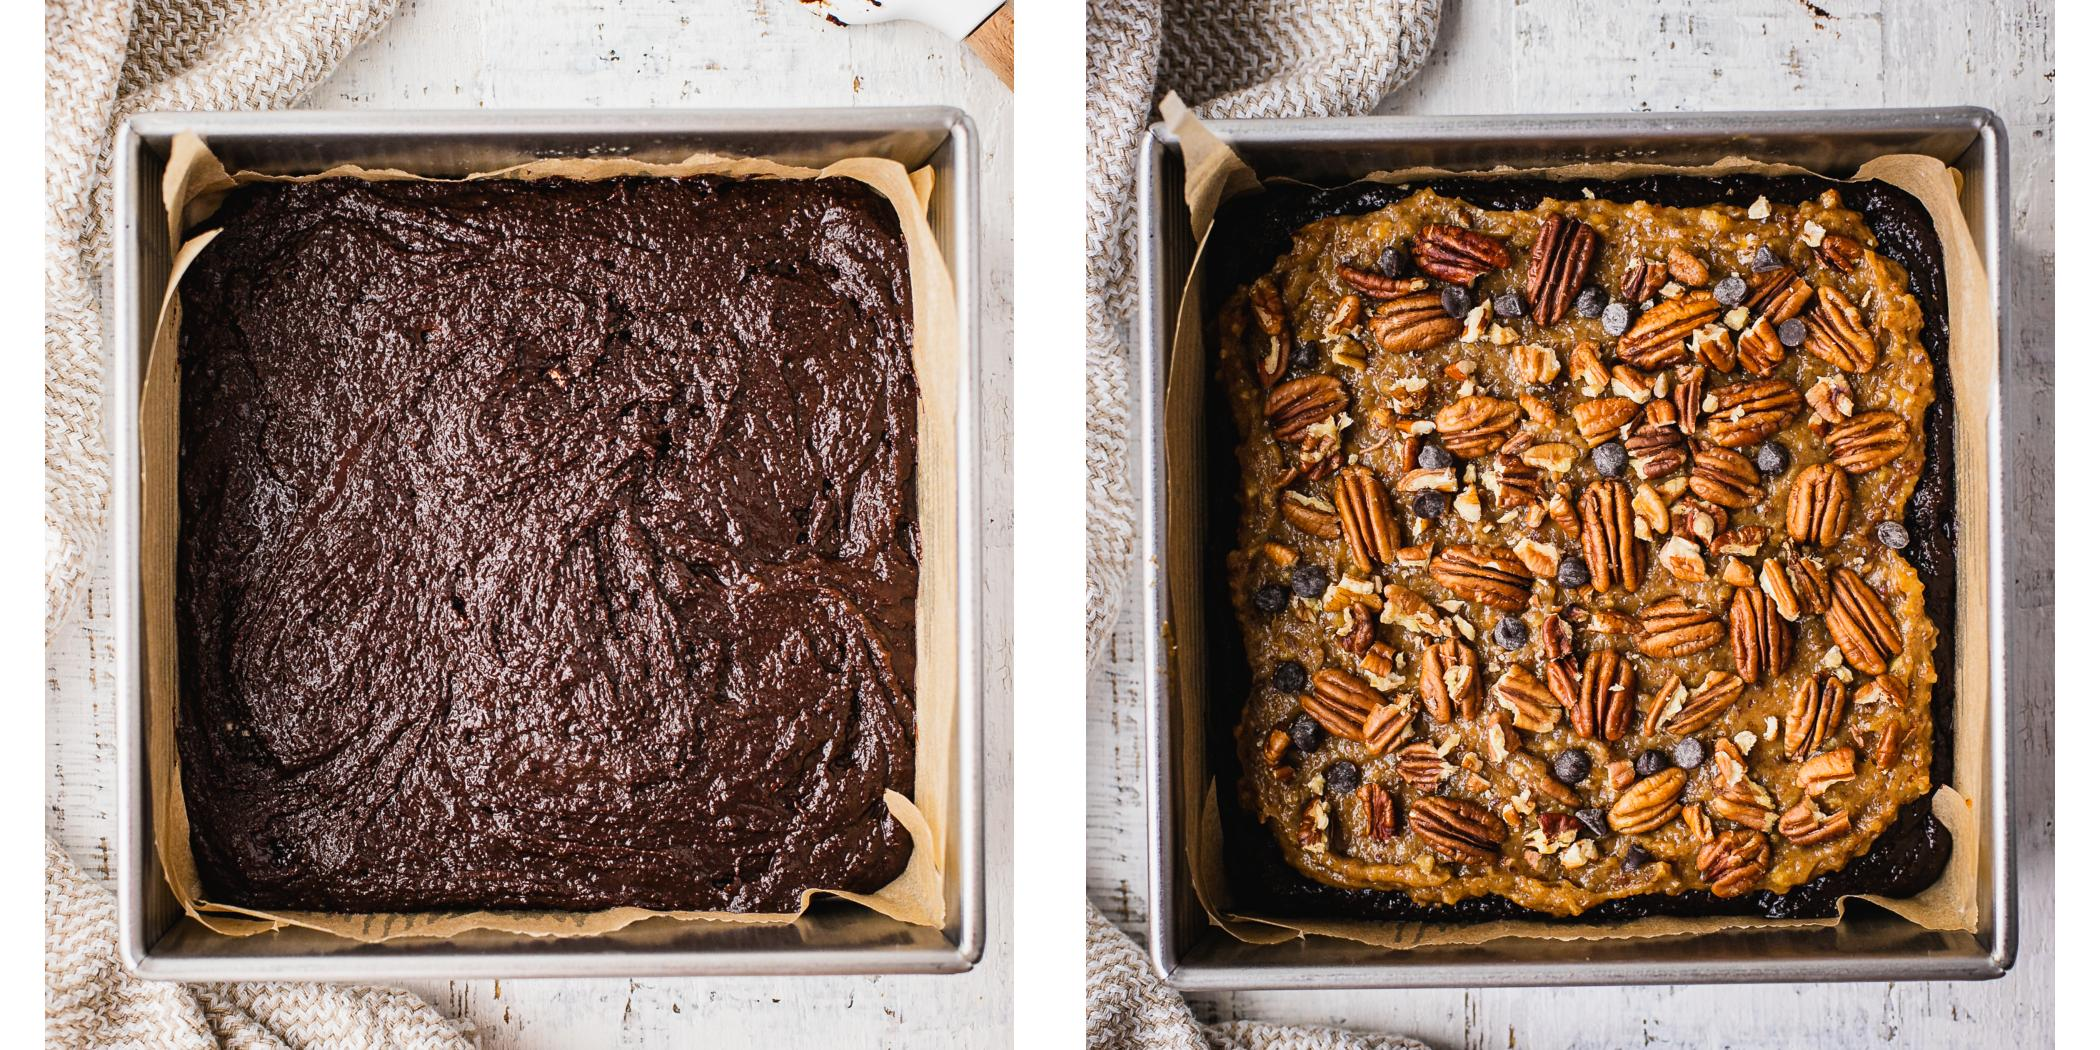 Instruction on how to make pecan pie brownie in an 8x8 baking dish.